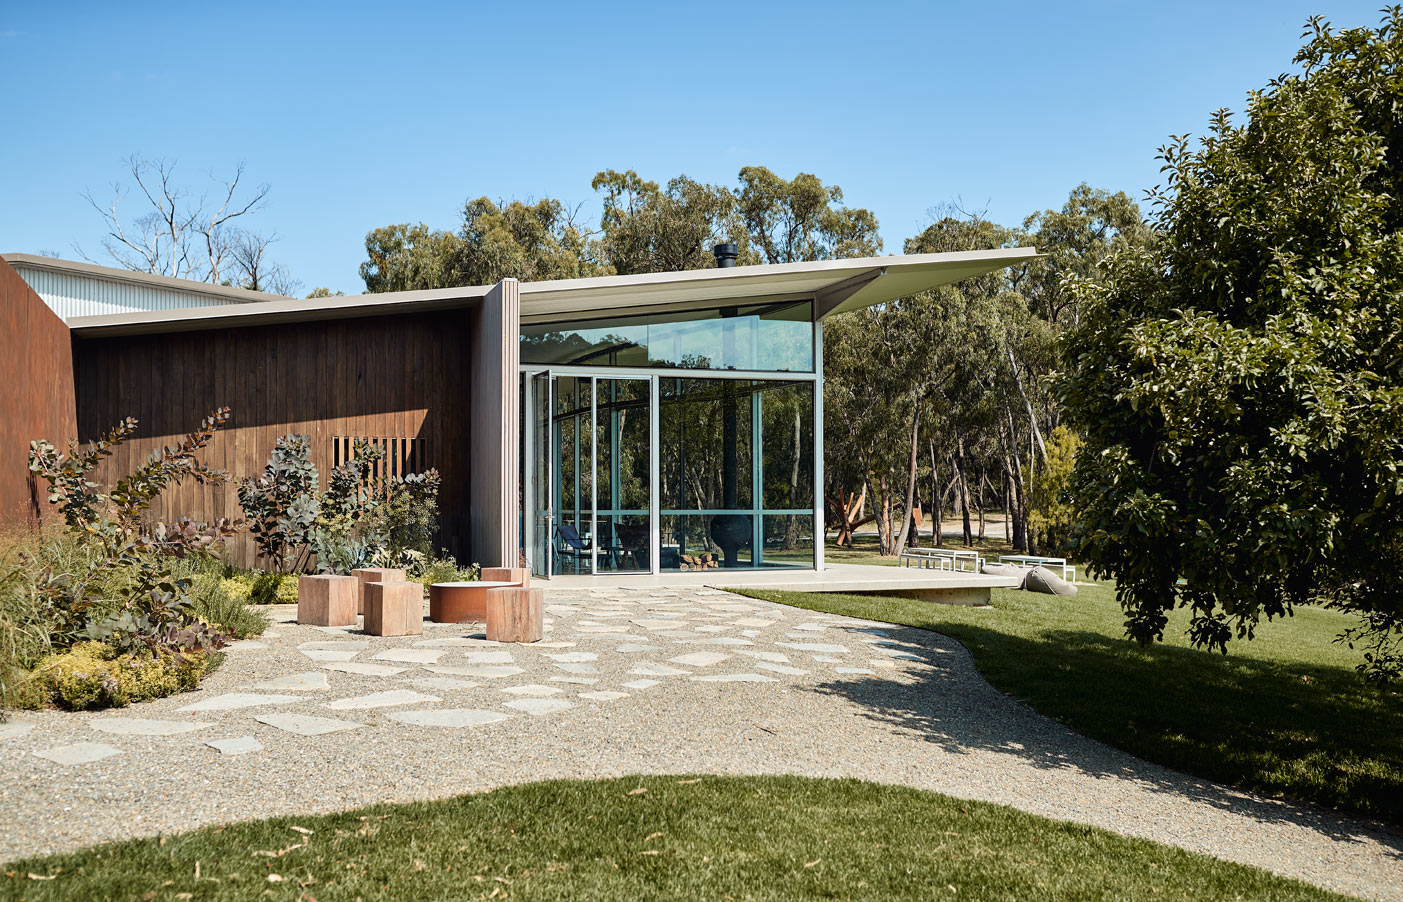 Medhurst Winery Cellar Door, side view with landscaping, Overend Constructions, Folk Architects, architectural, design